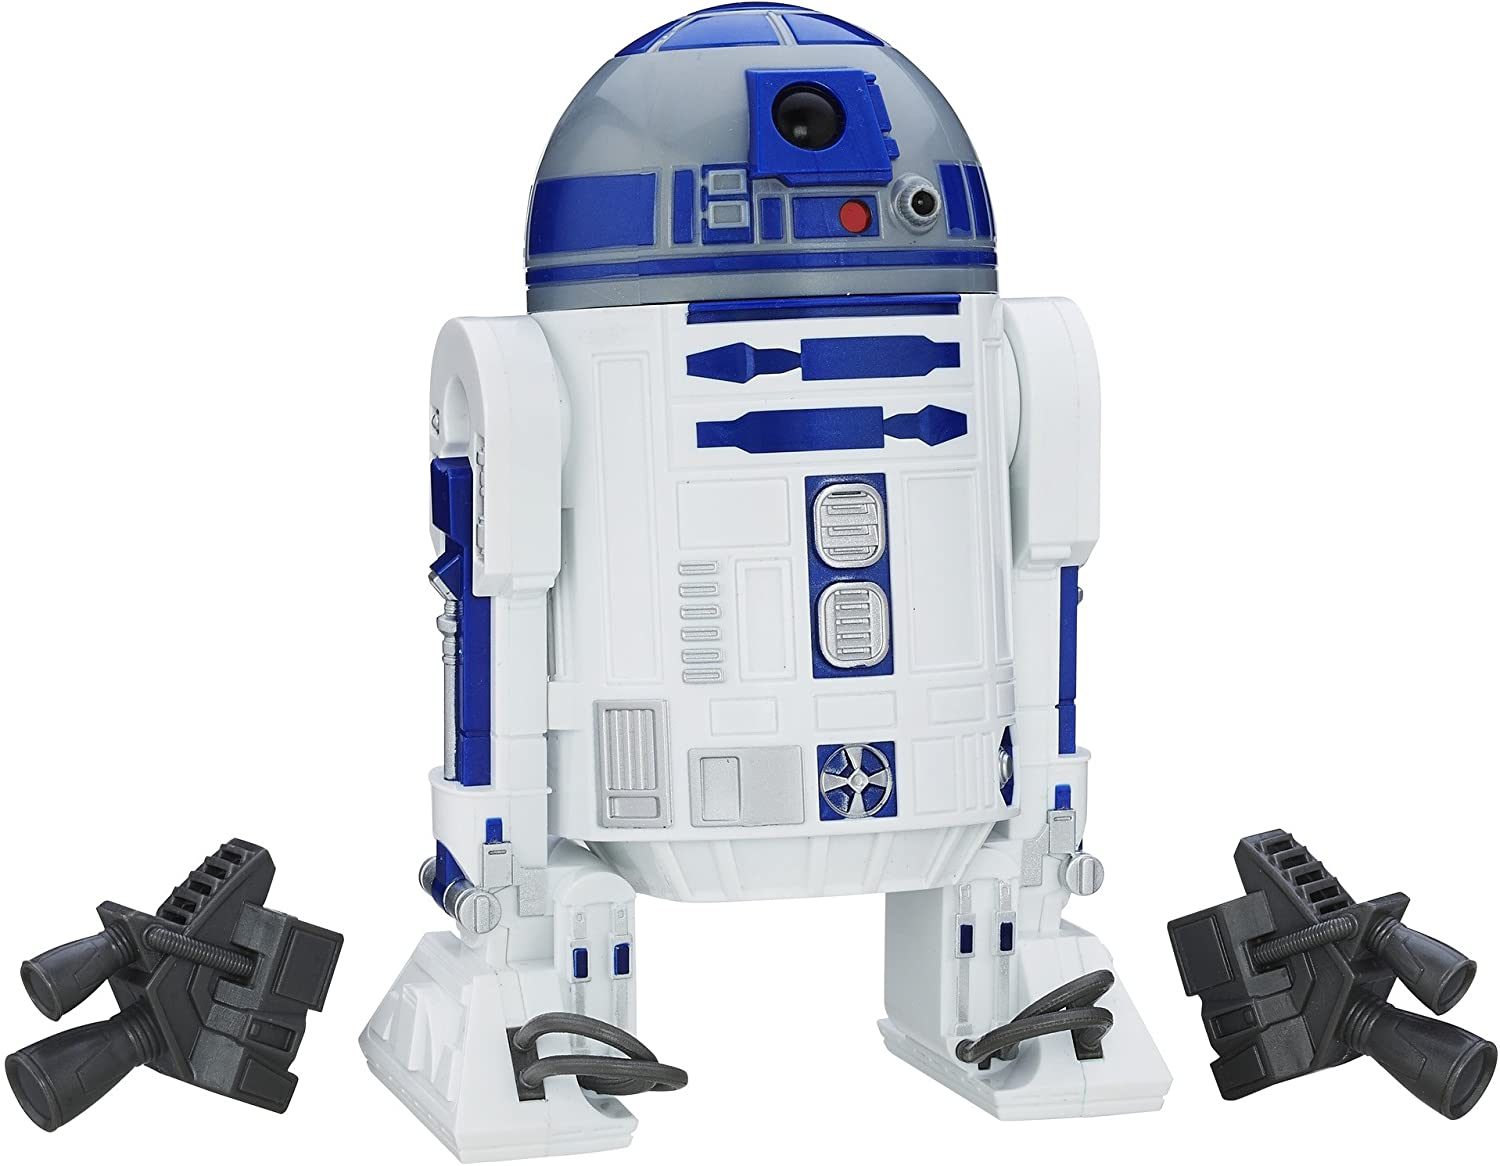 Star Wars: The Force Awakens R2-D2 Figure 7 Inches